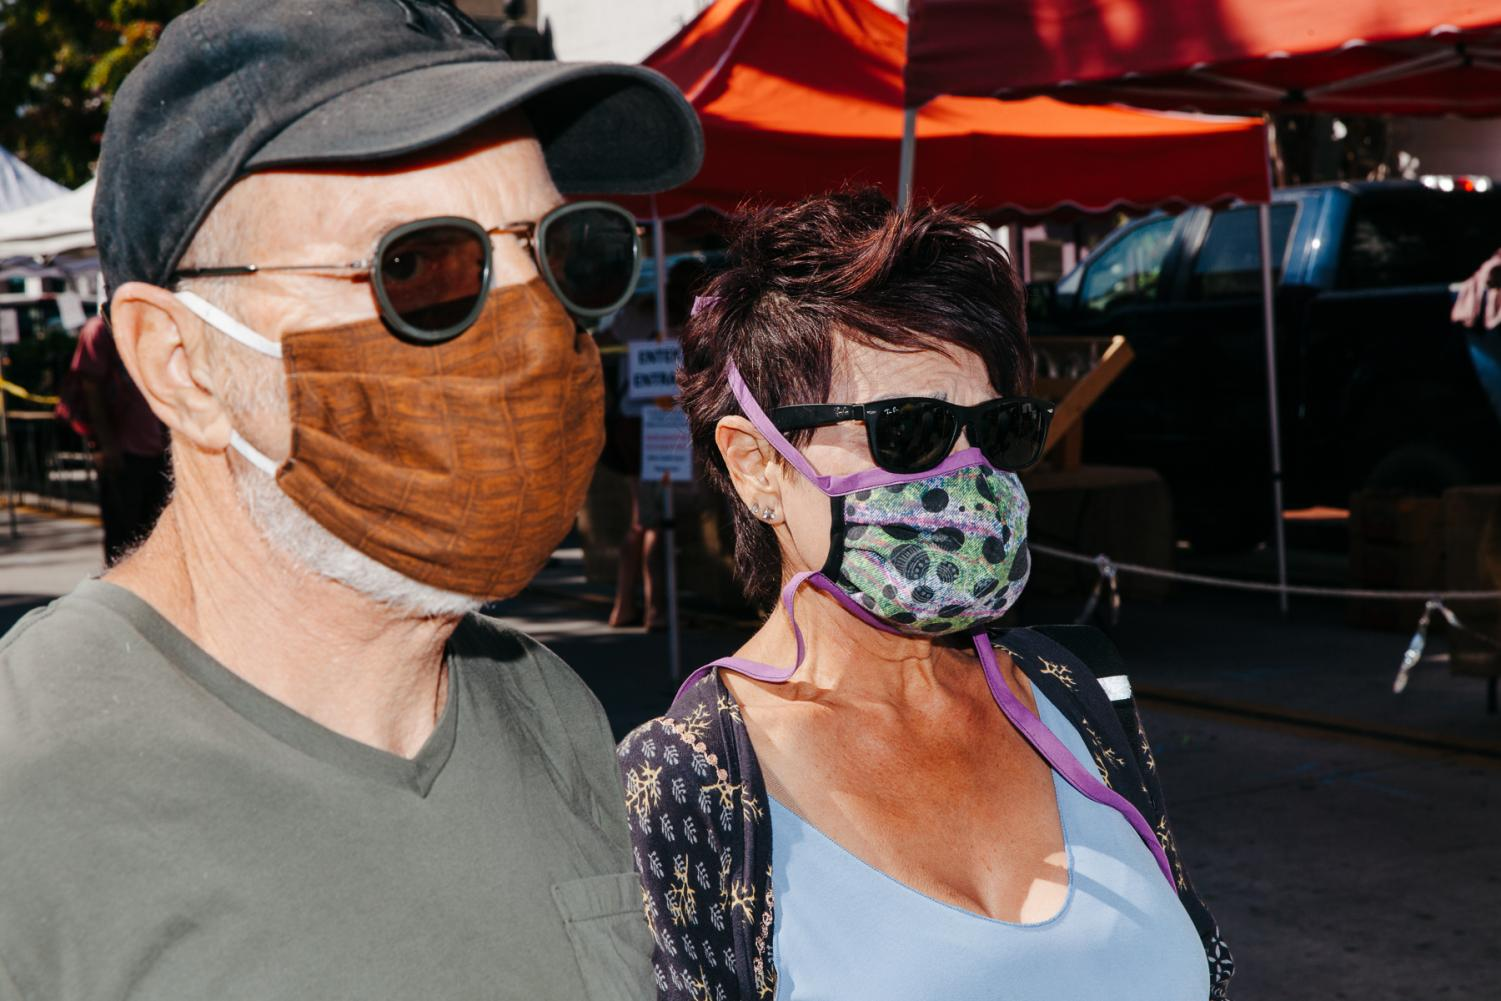 Peter and Naomi Pavia in homemade masks stitched by Naomi on Tuesday, April 24 in Downtown Santa Barbara, Calif. Naomi Stitches masks to donate to friends, neighbors and nursing homes while Peter thinks the virus is exaggerated, but wears a mask to be courteous to others.